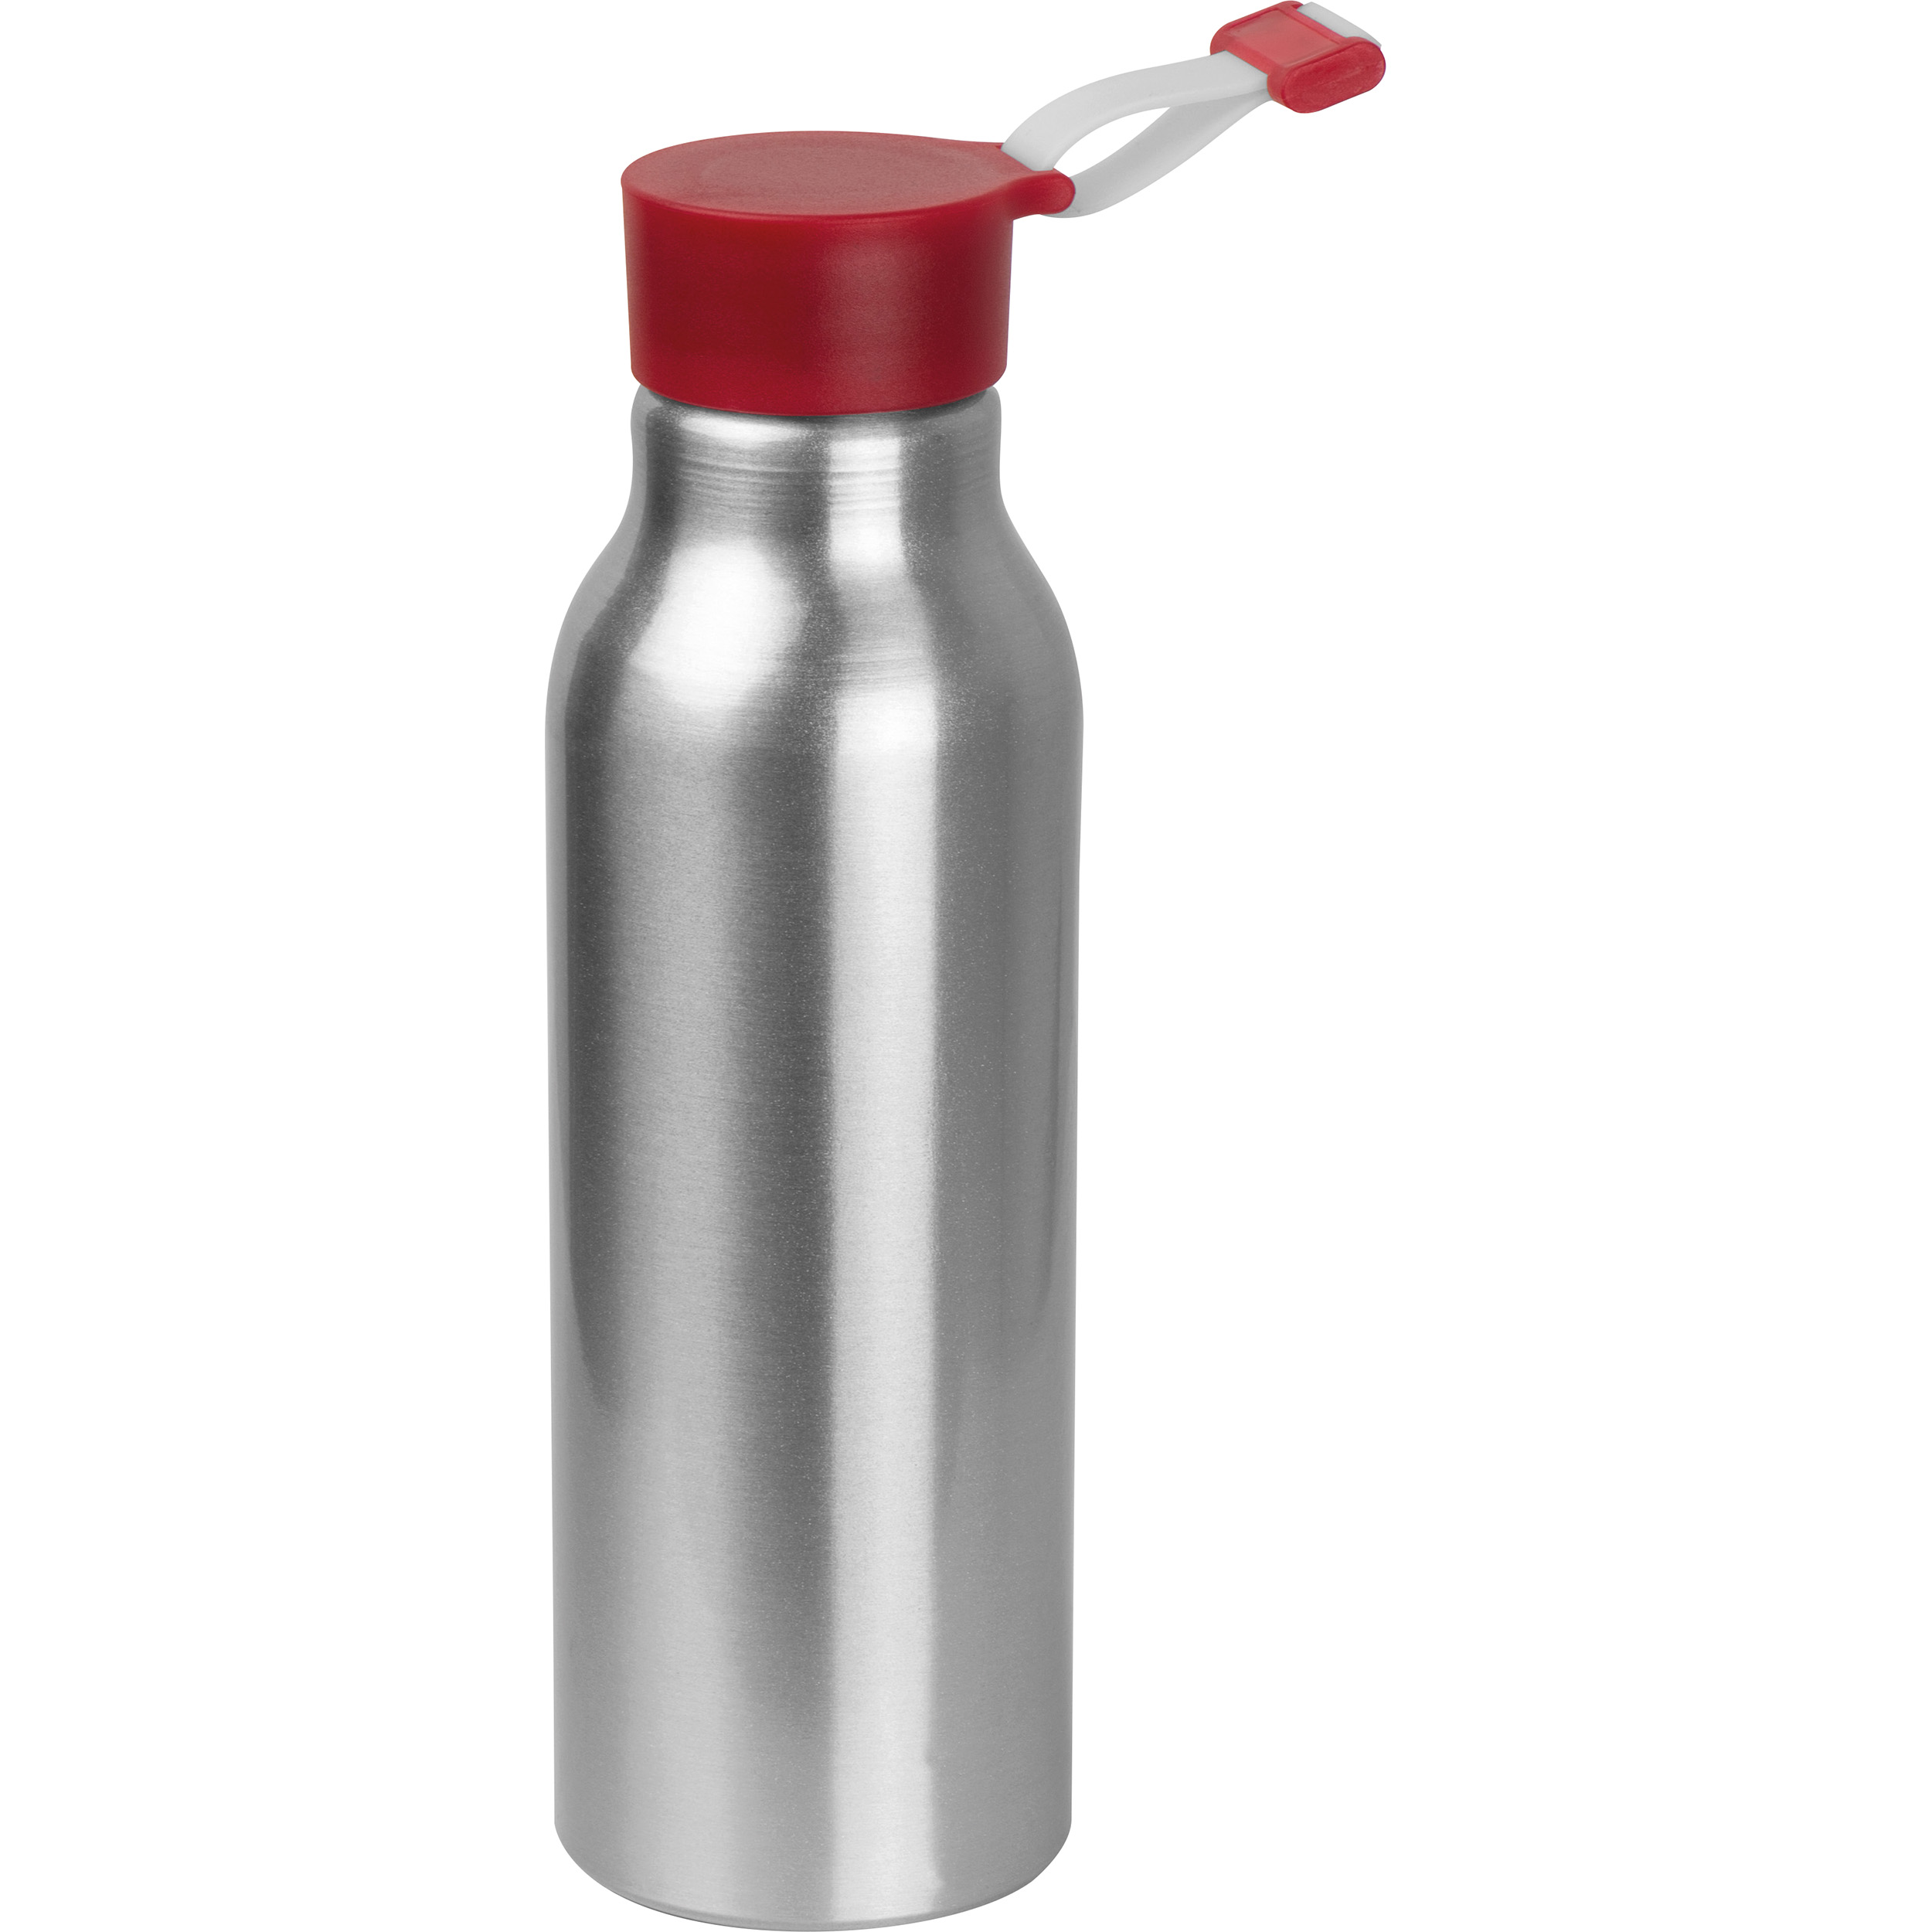 Metal drinking bottle with silicone lid